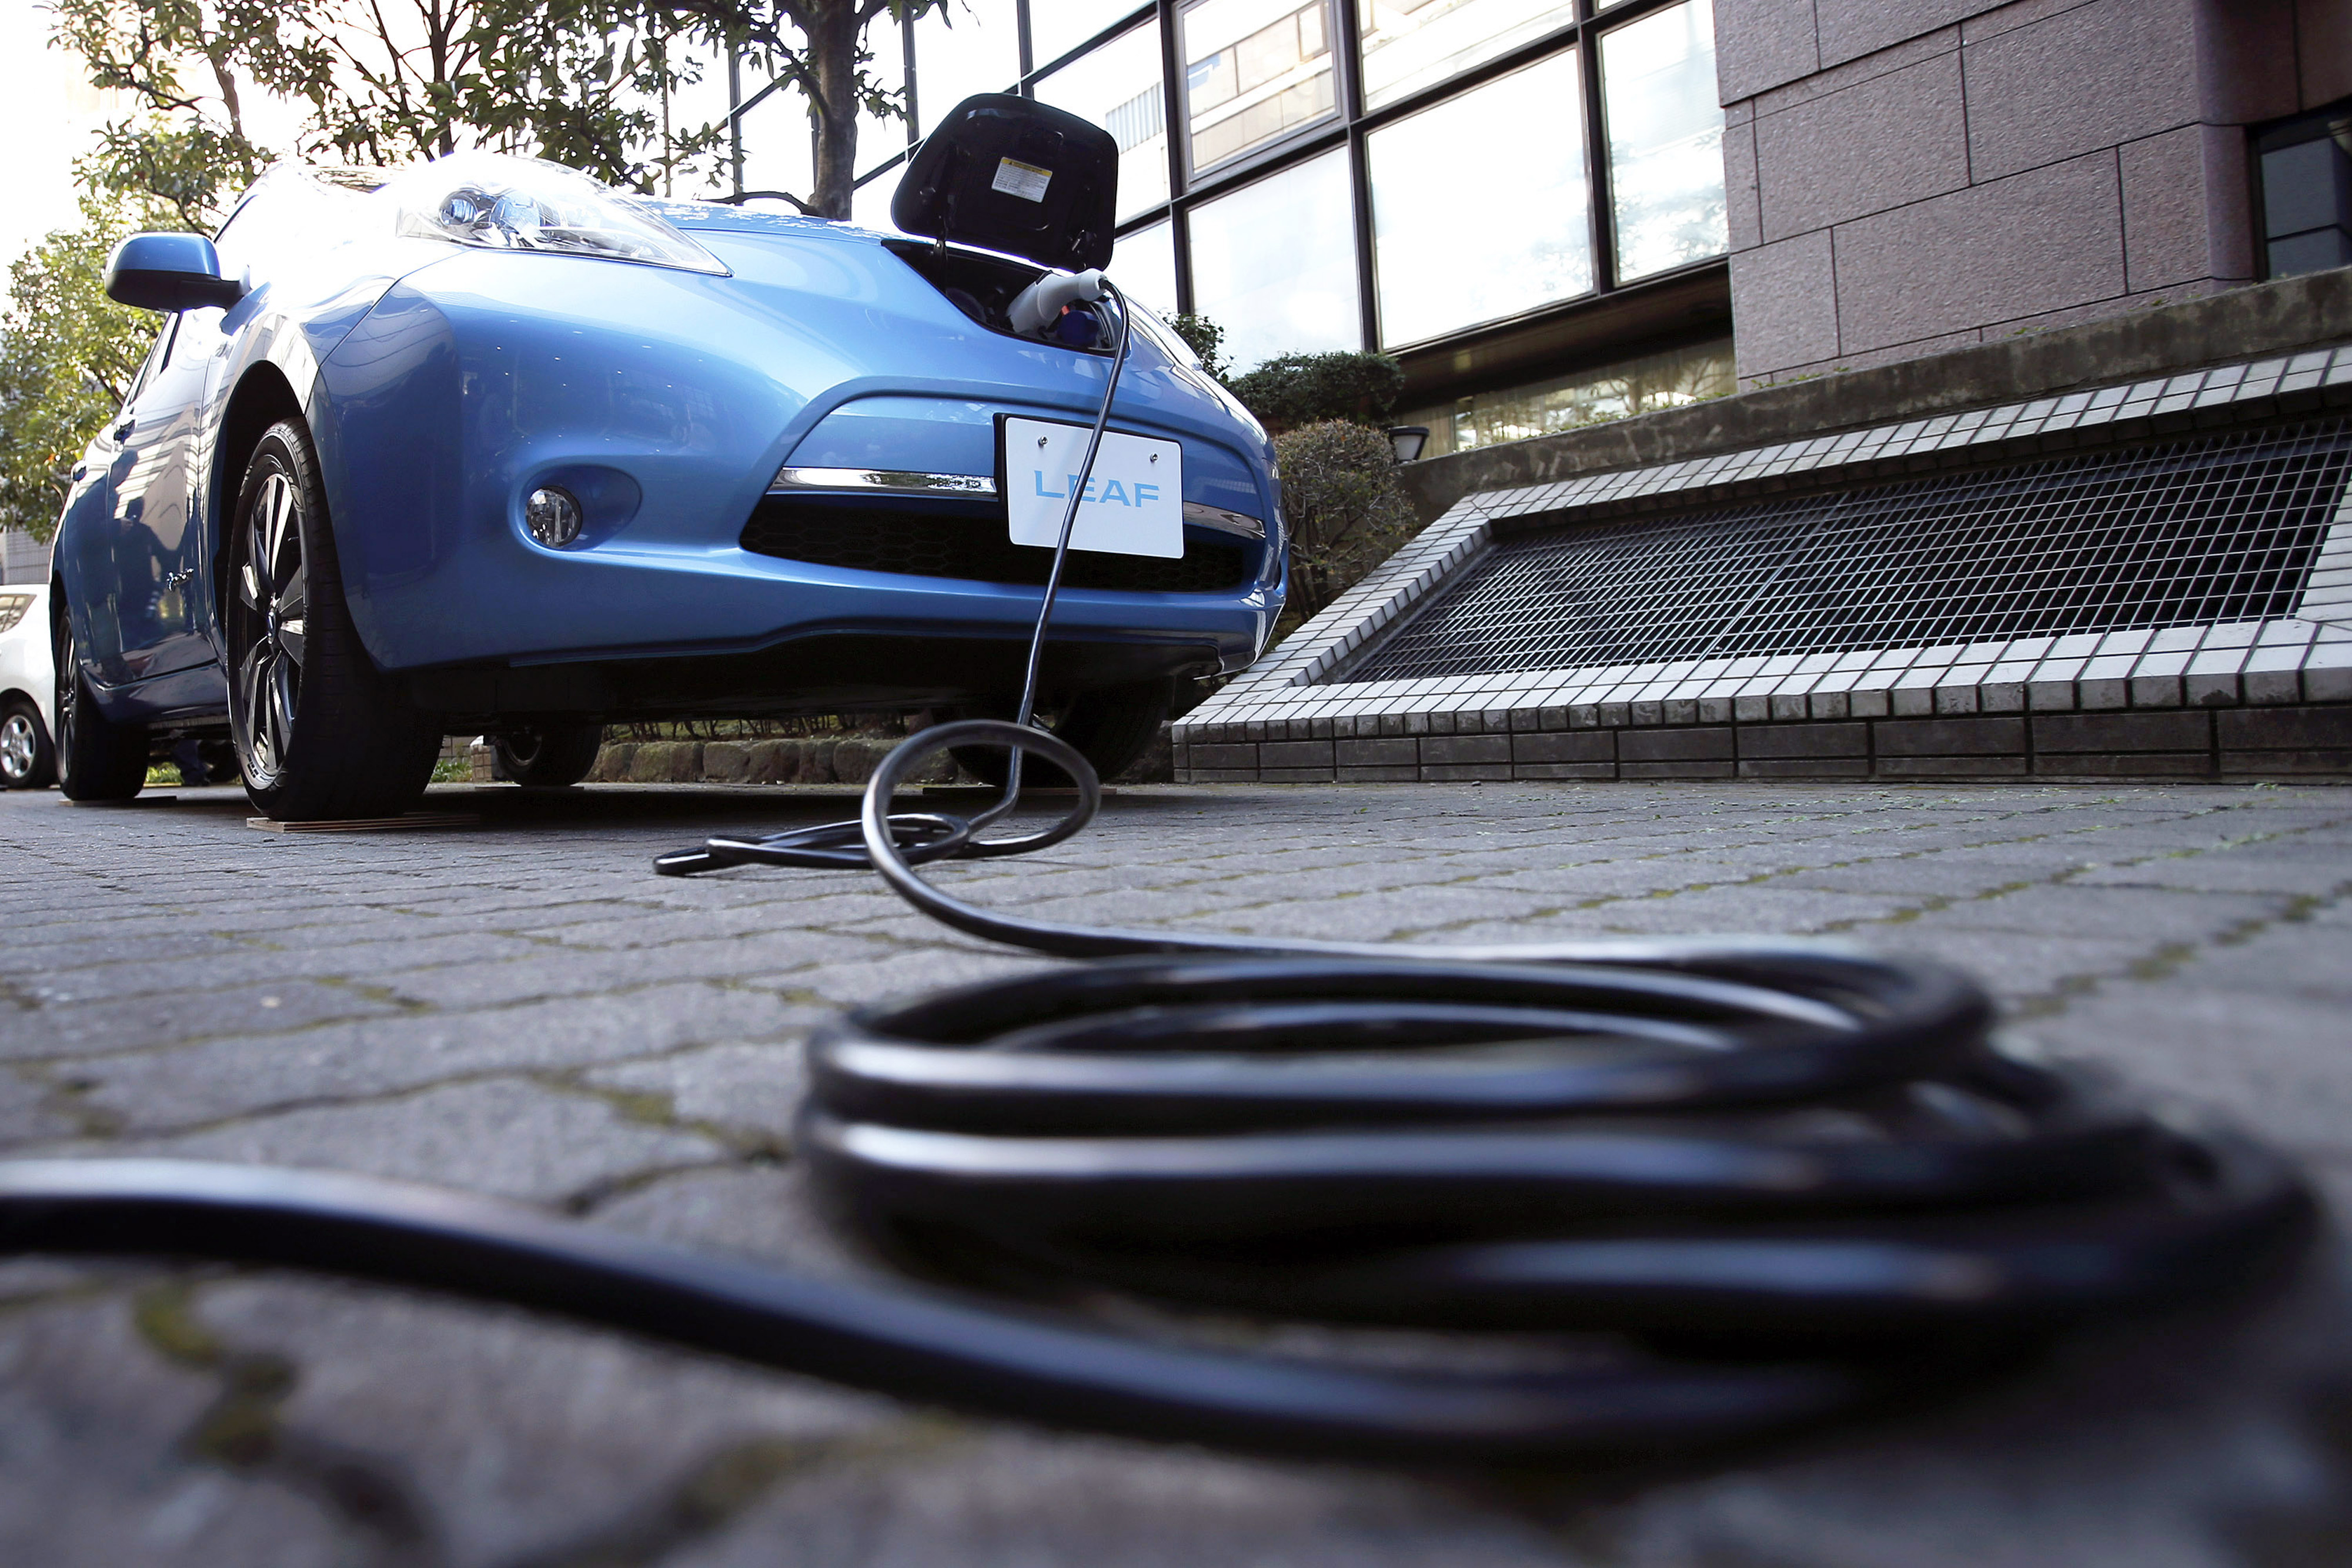 An electric charging cable is seen connected to the updated Nissan Leaf vehicle during a news conference in Japan, Tokyo, on Tuesday, Nov. 20, 2012.